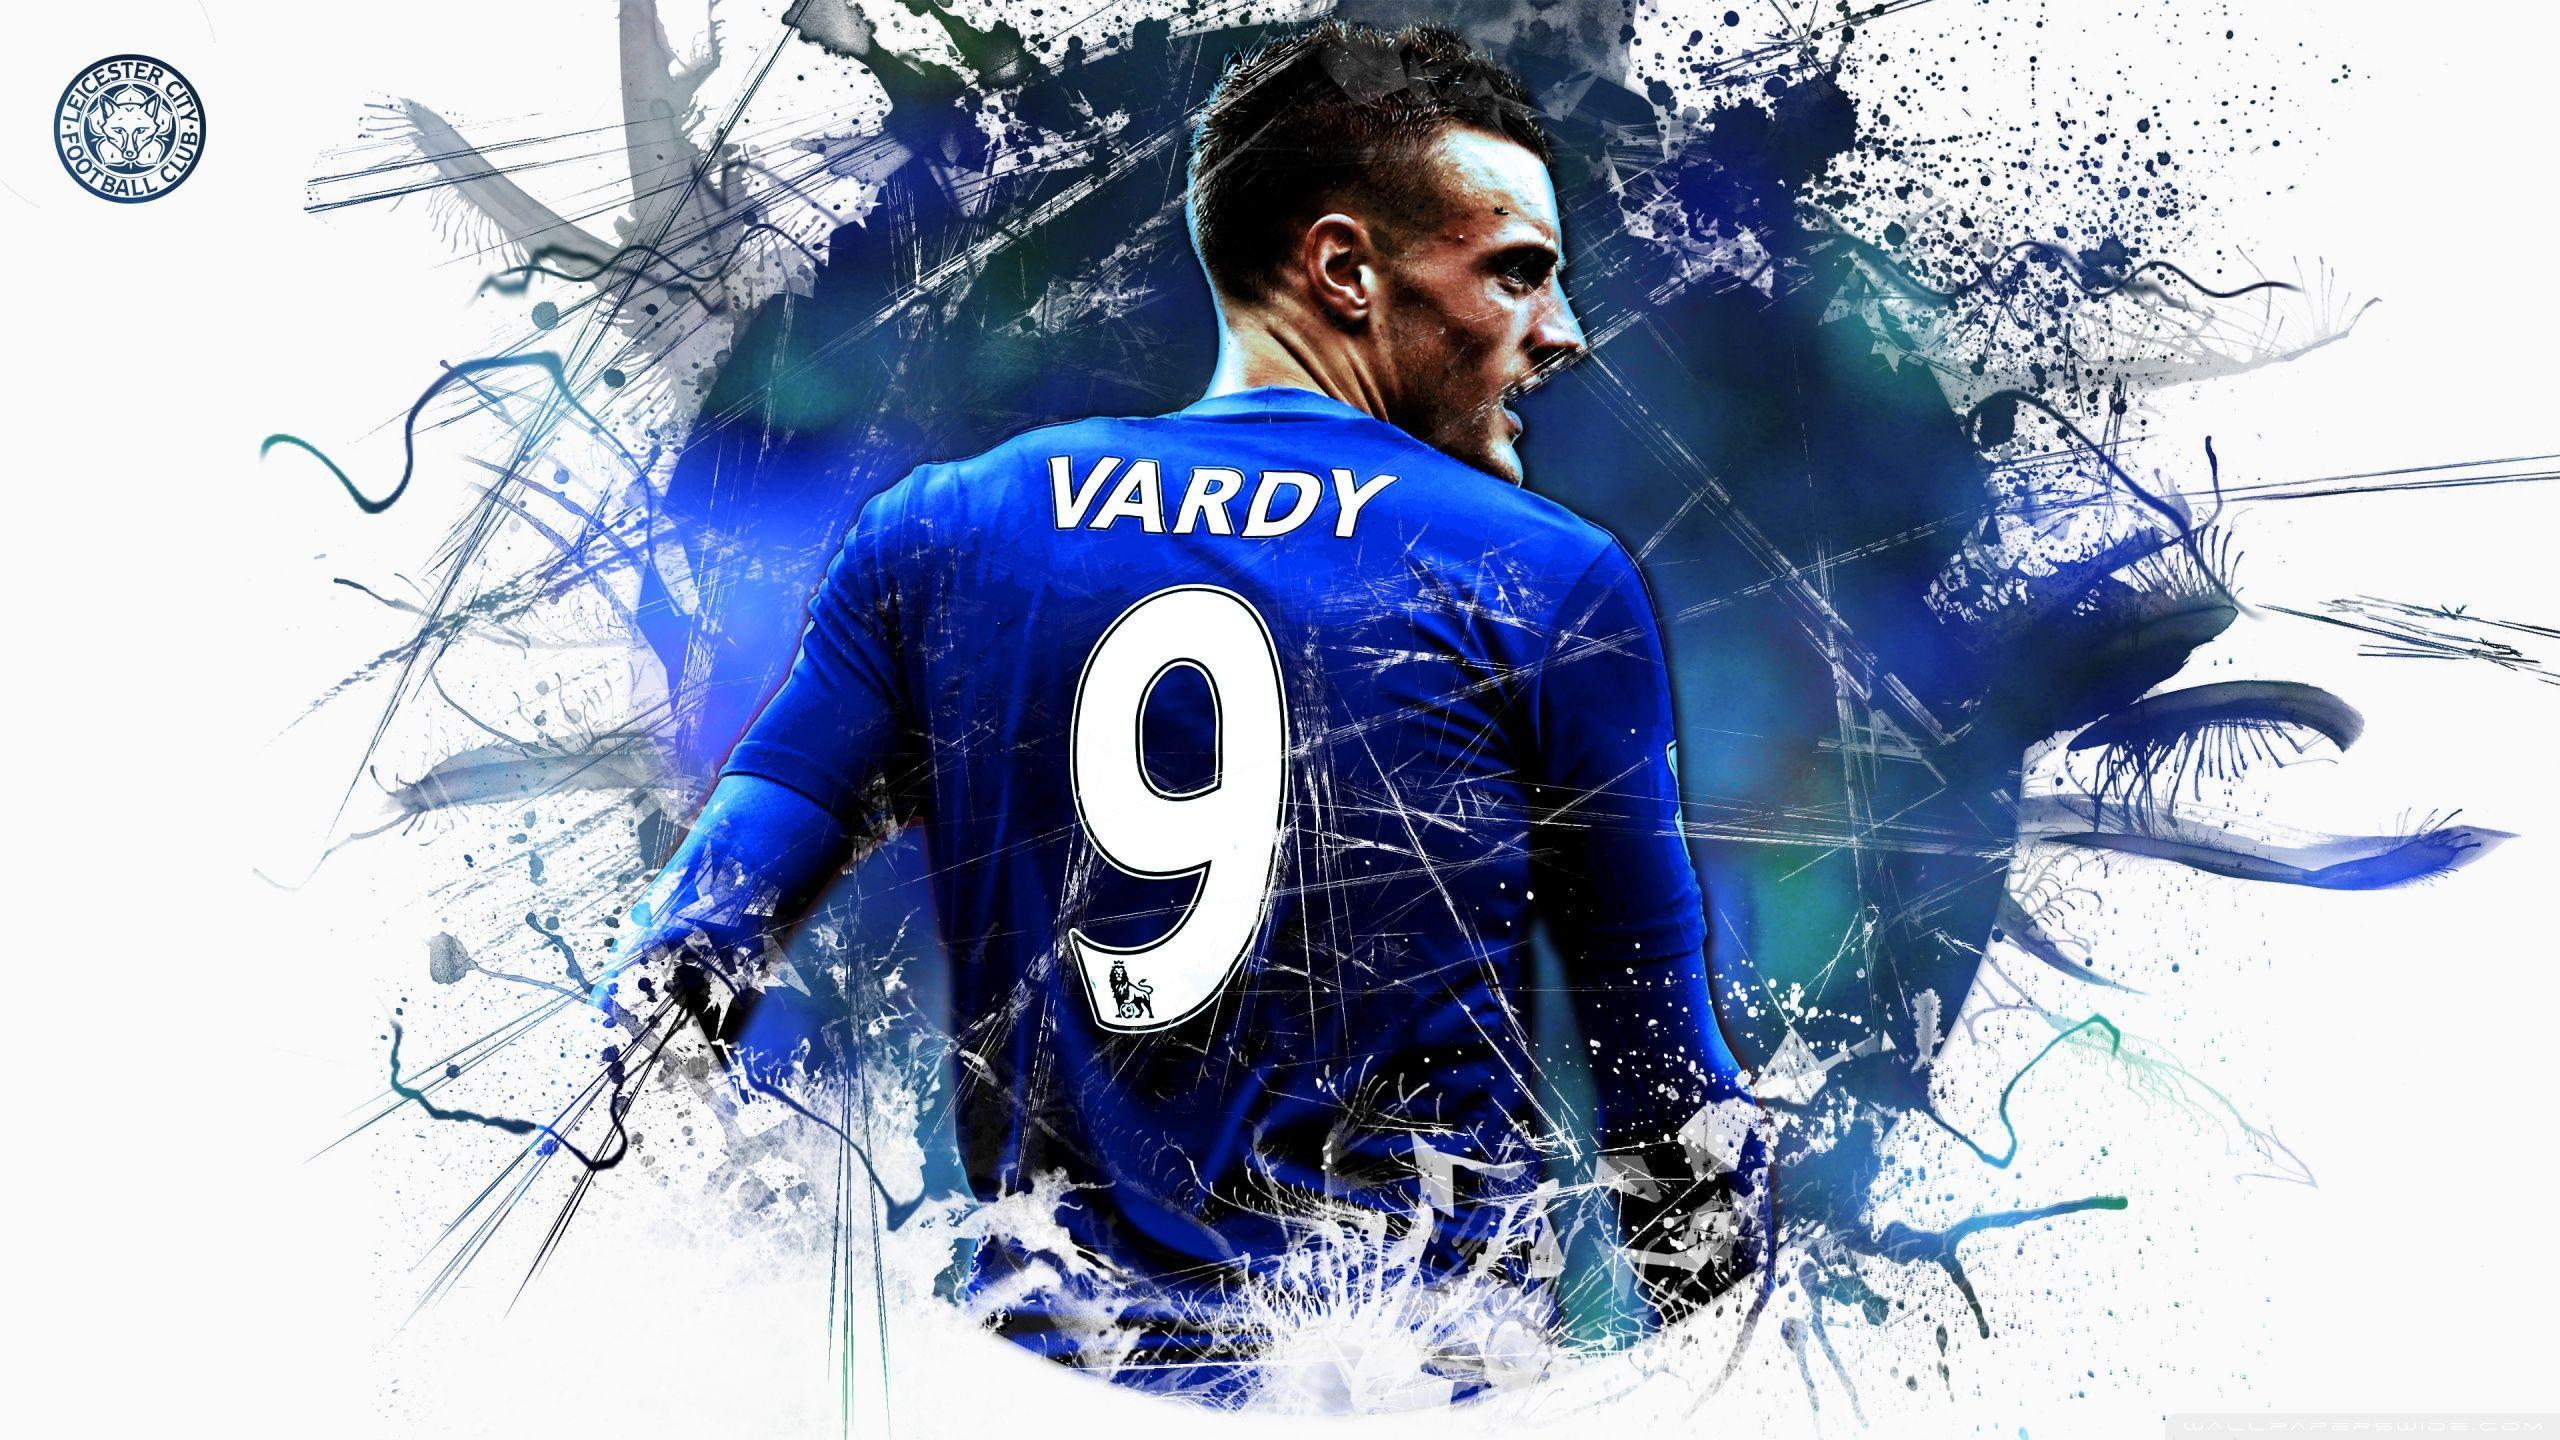 Jamie Vardy Wallpaper - 2016 HD desktop wallpaper : High Definition